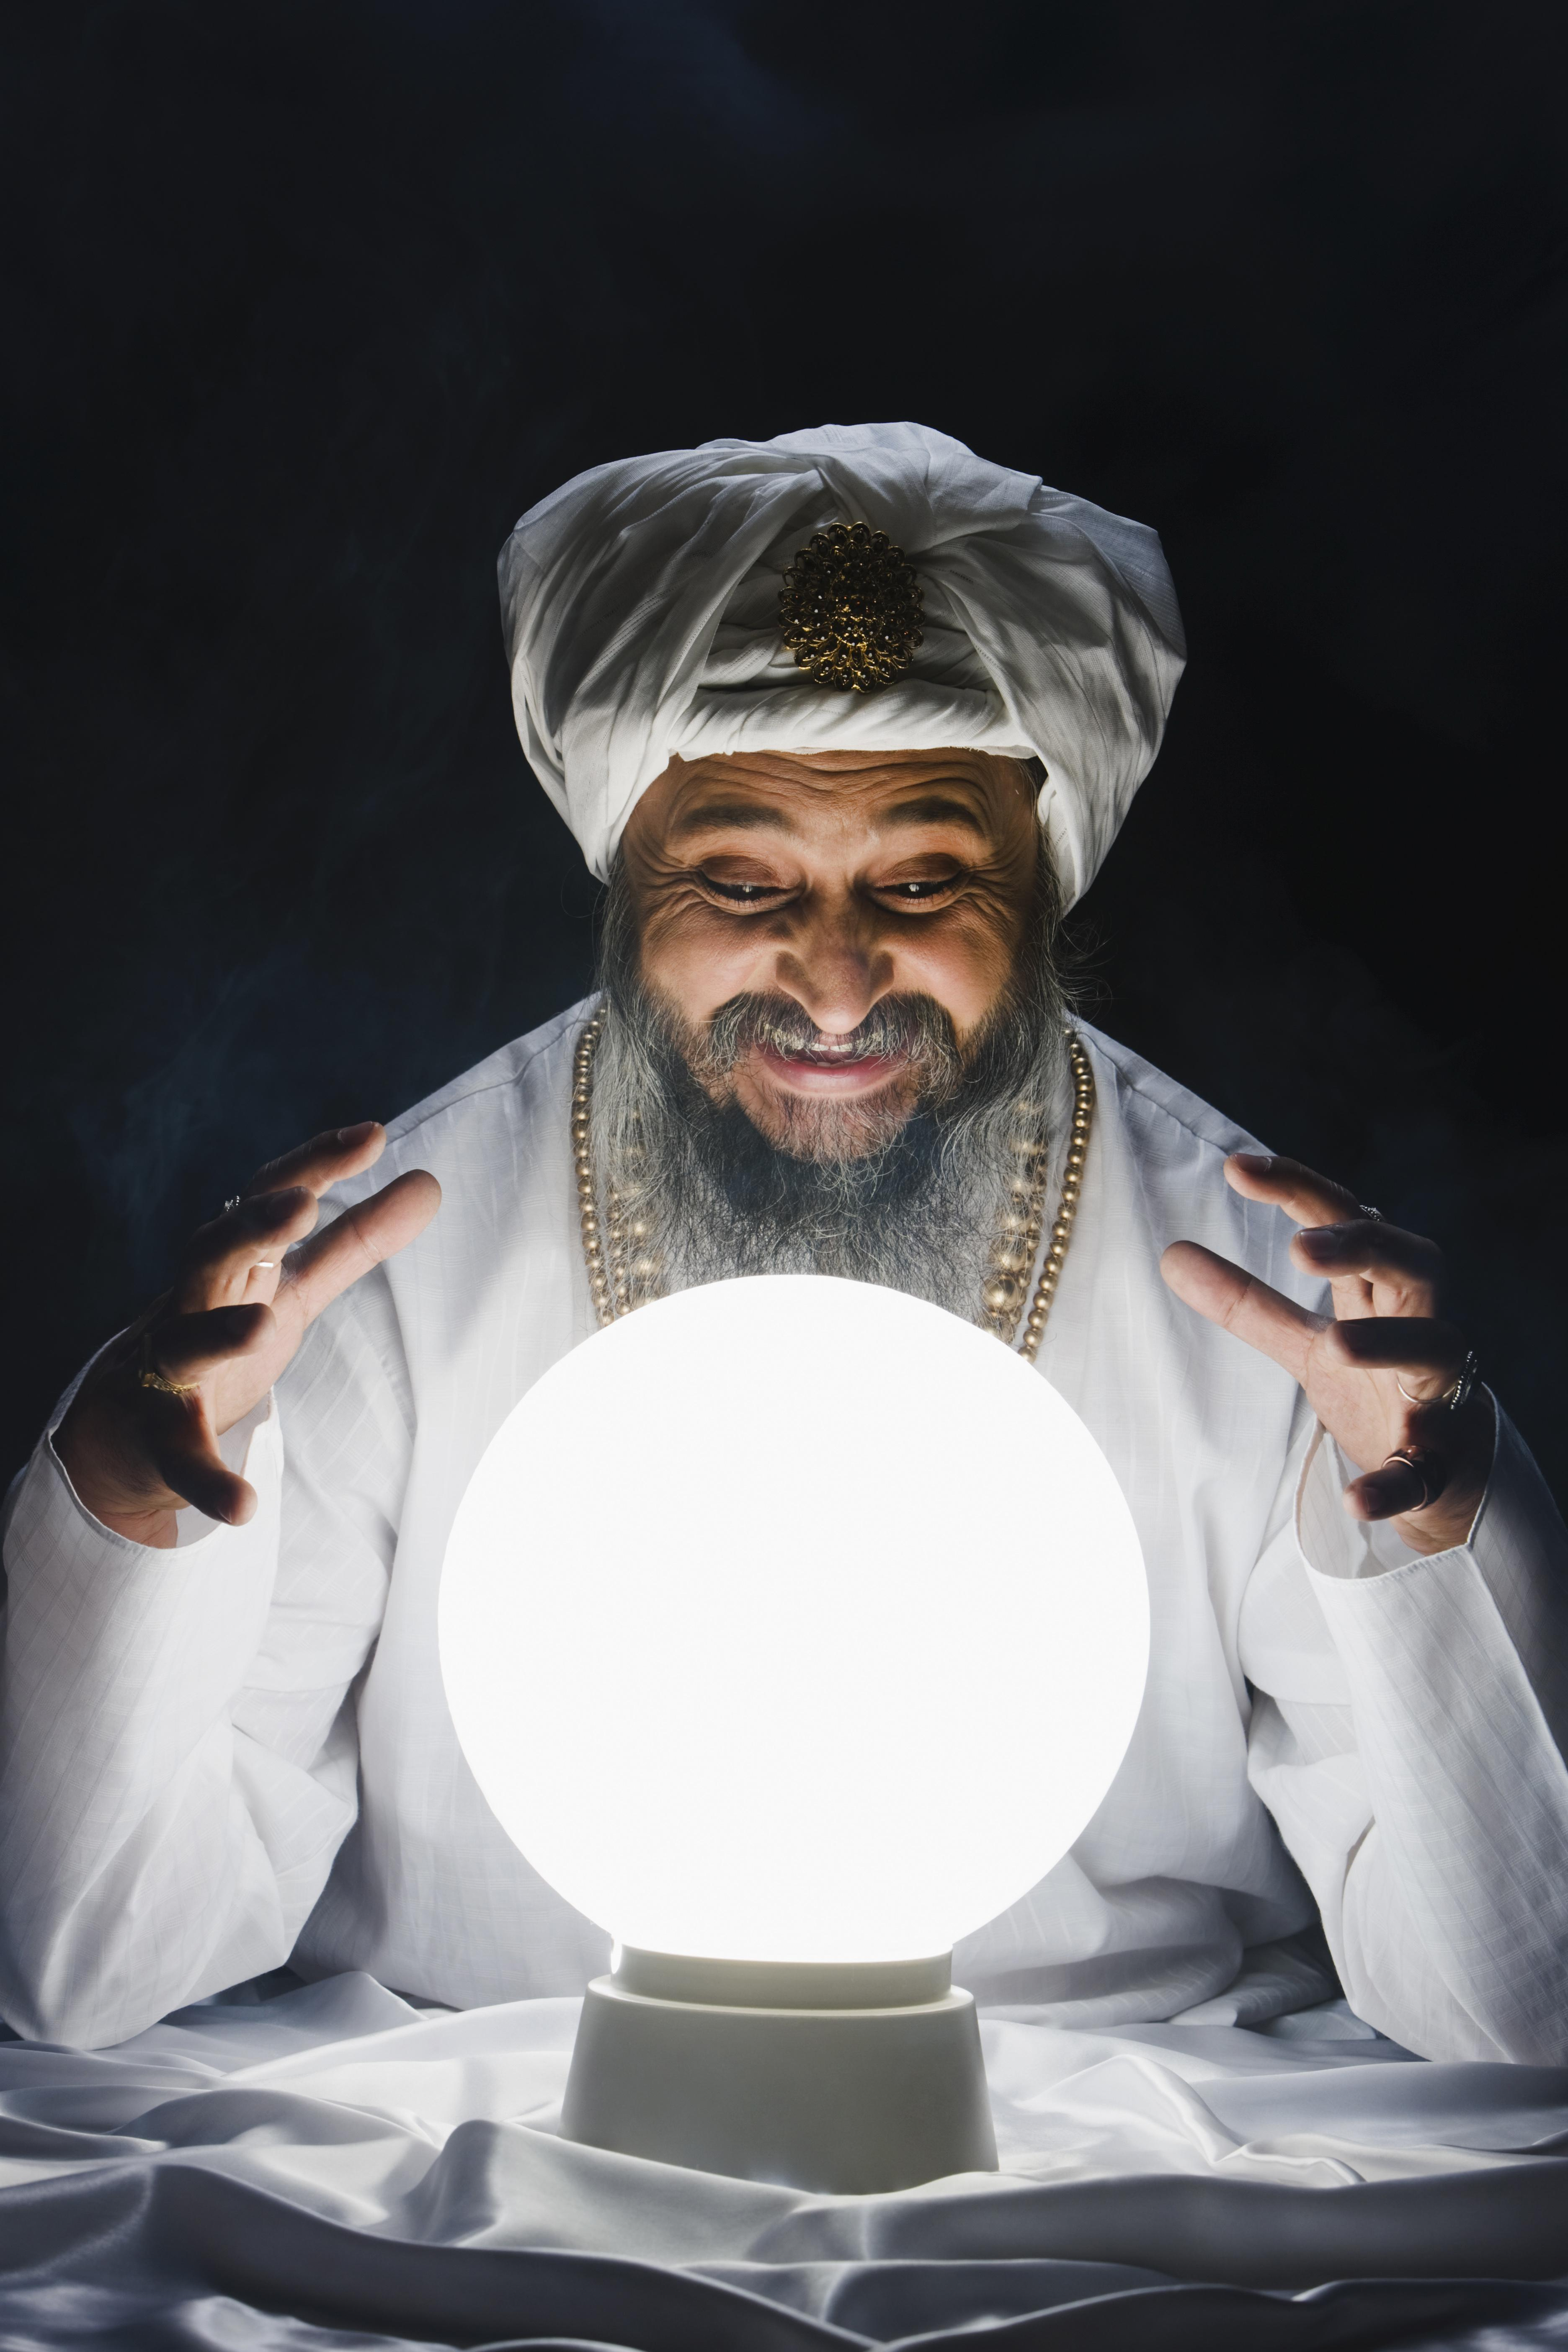 Male fortune teller and crystal ball